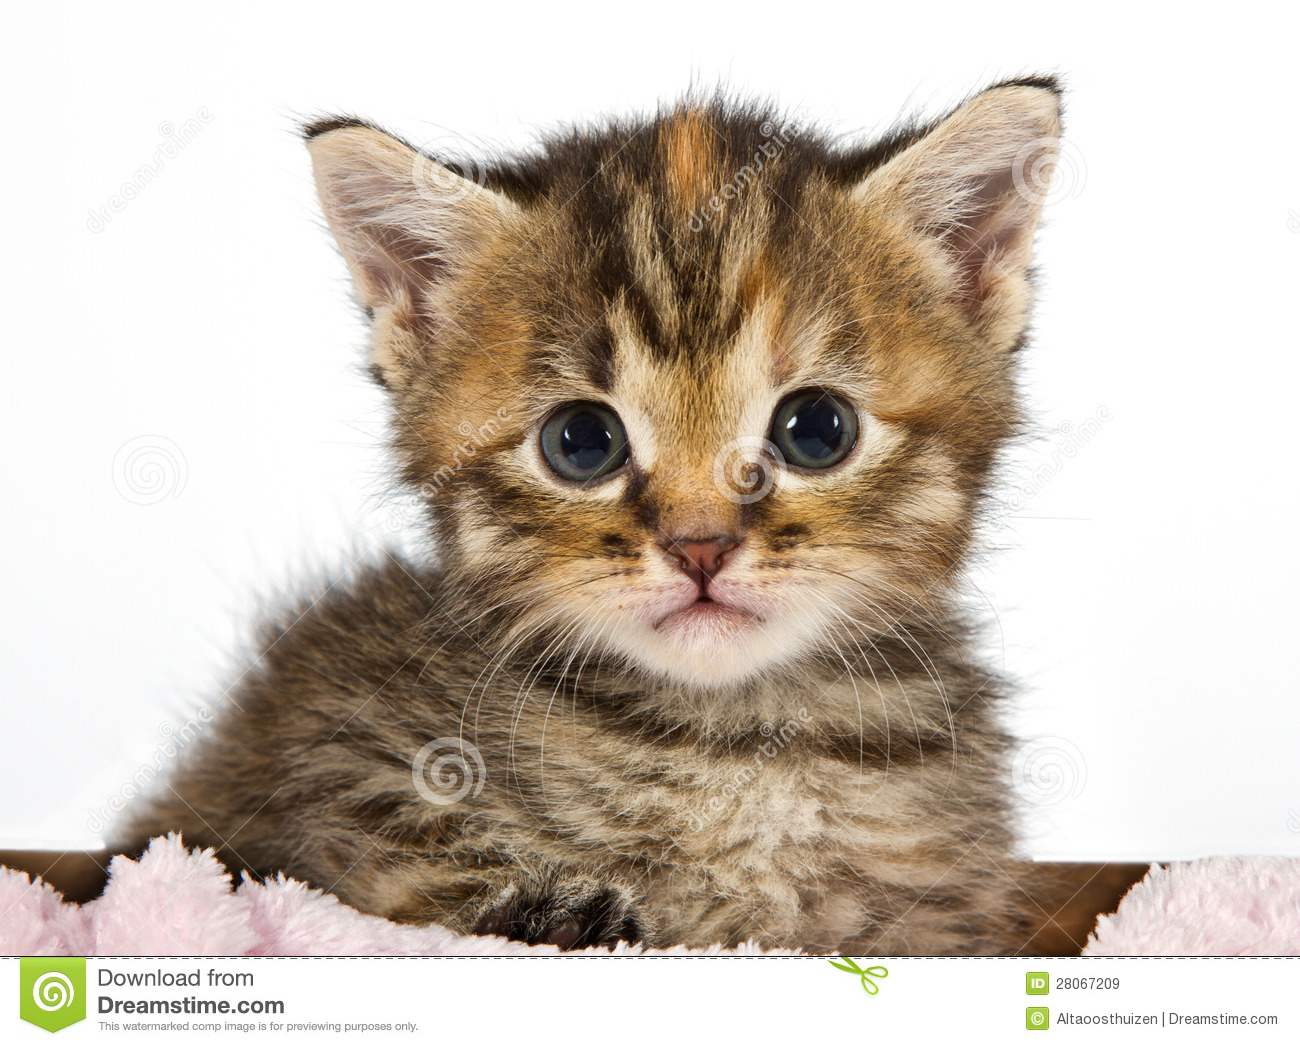 Cute Cats And Kittens Wallpaper Hd Cat Themes Kitten Looking Adorable And Cute Royalty Free Stock Images